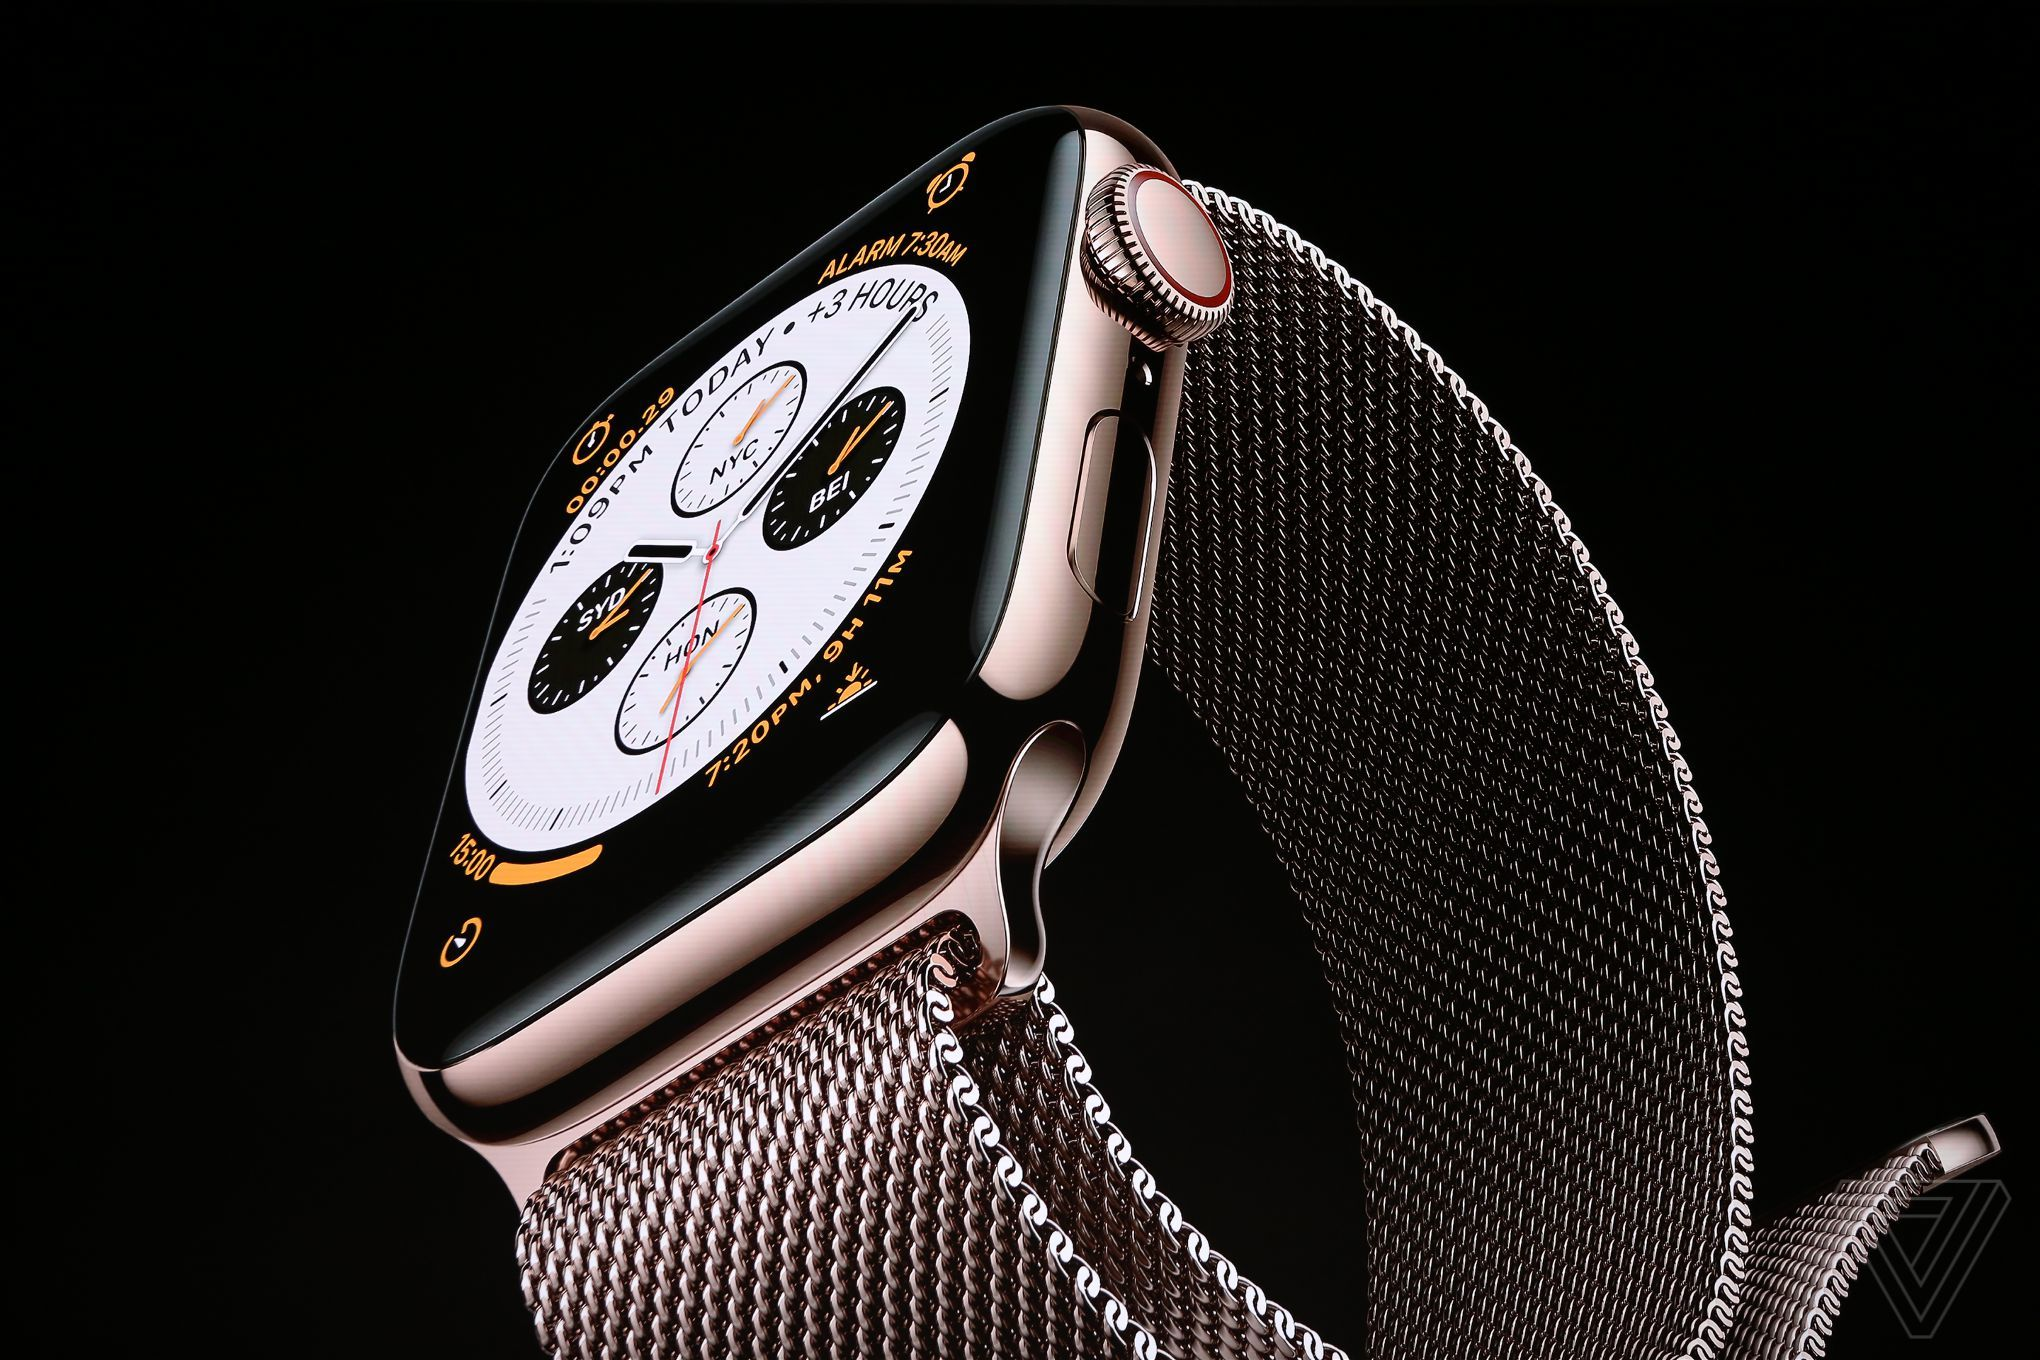 80b051875 The next Apple Watch update will be officially released on September ...